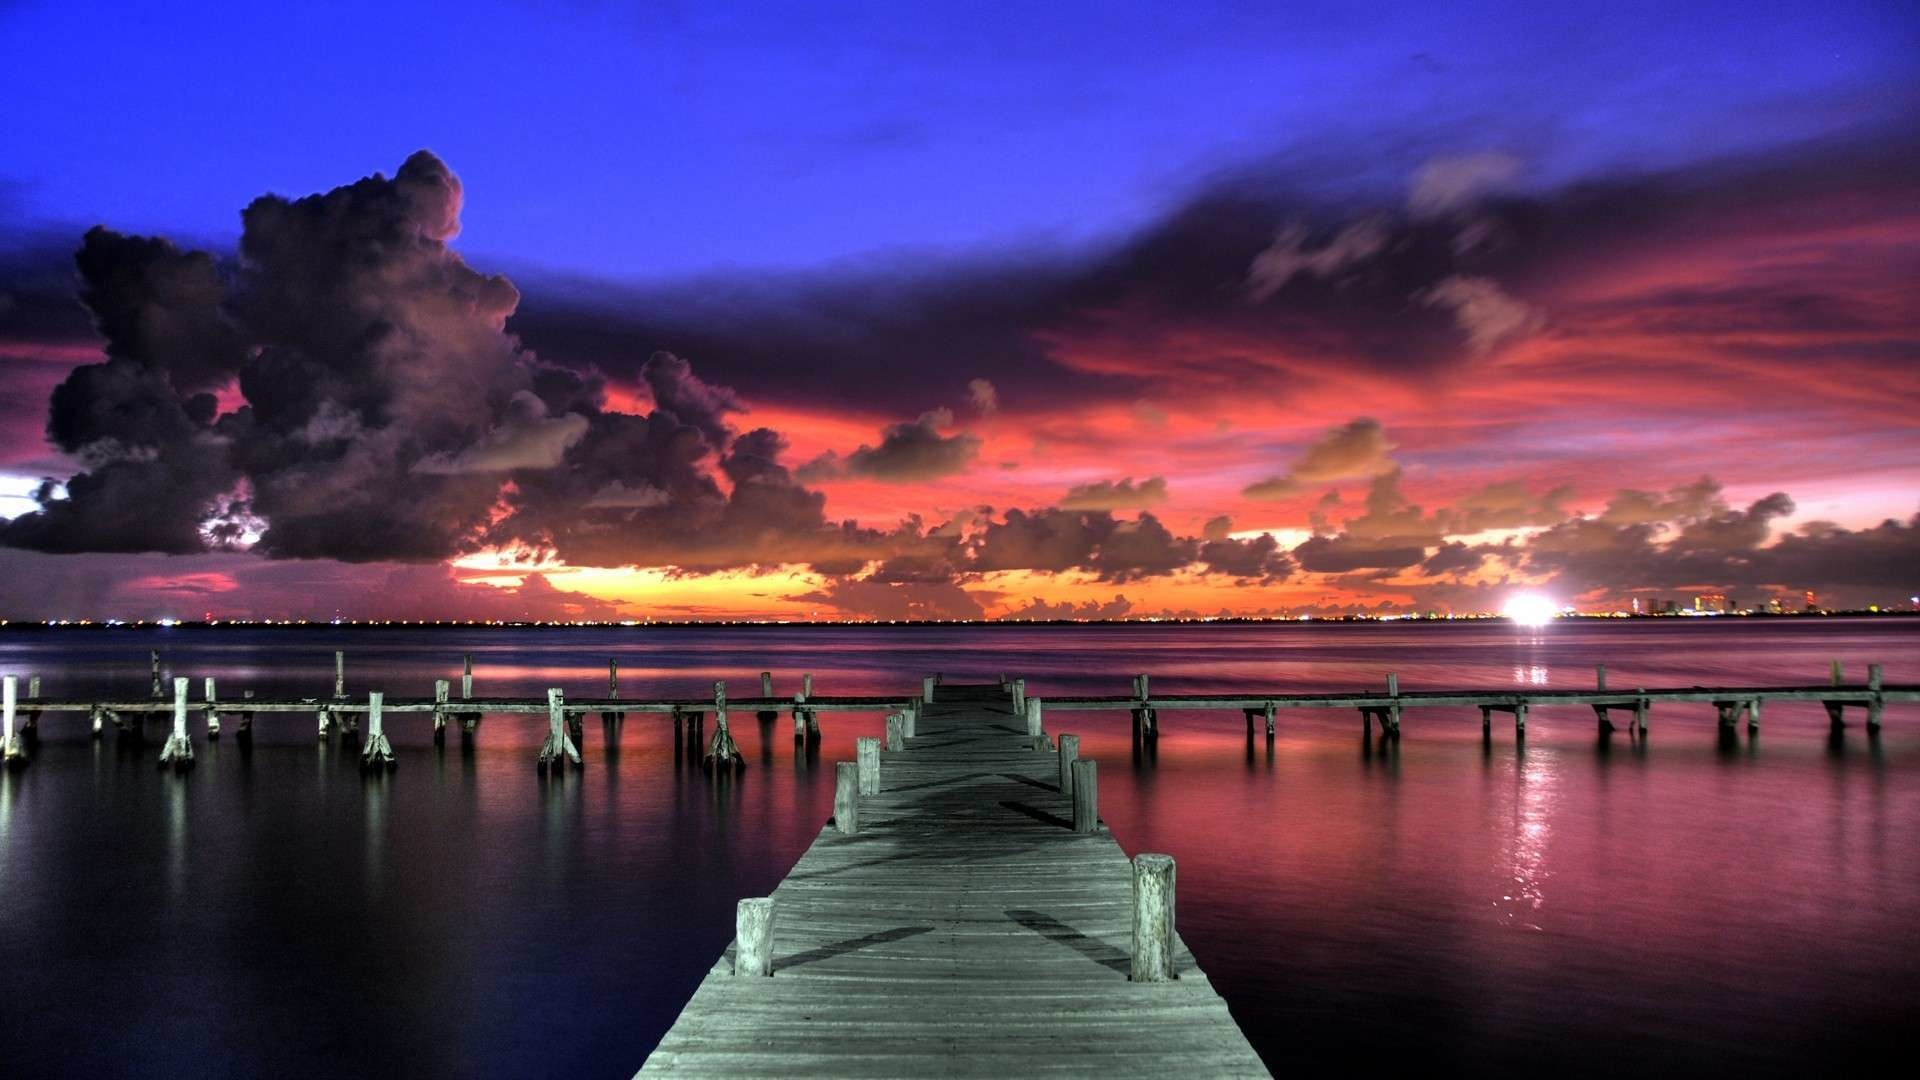 1920x1080 Impressive Clouds over the Dock HD Wallpaper. « »